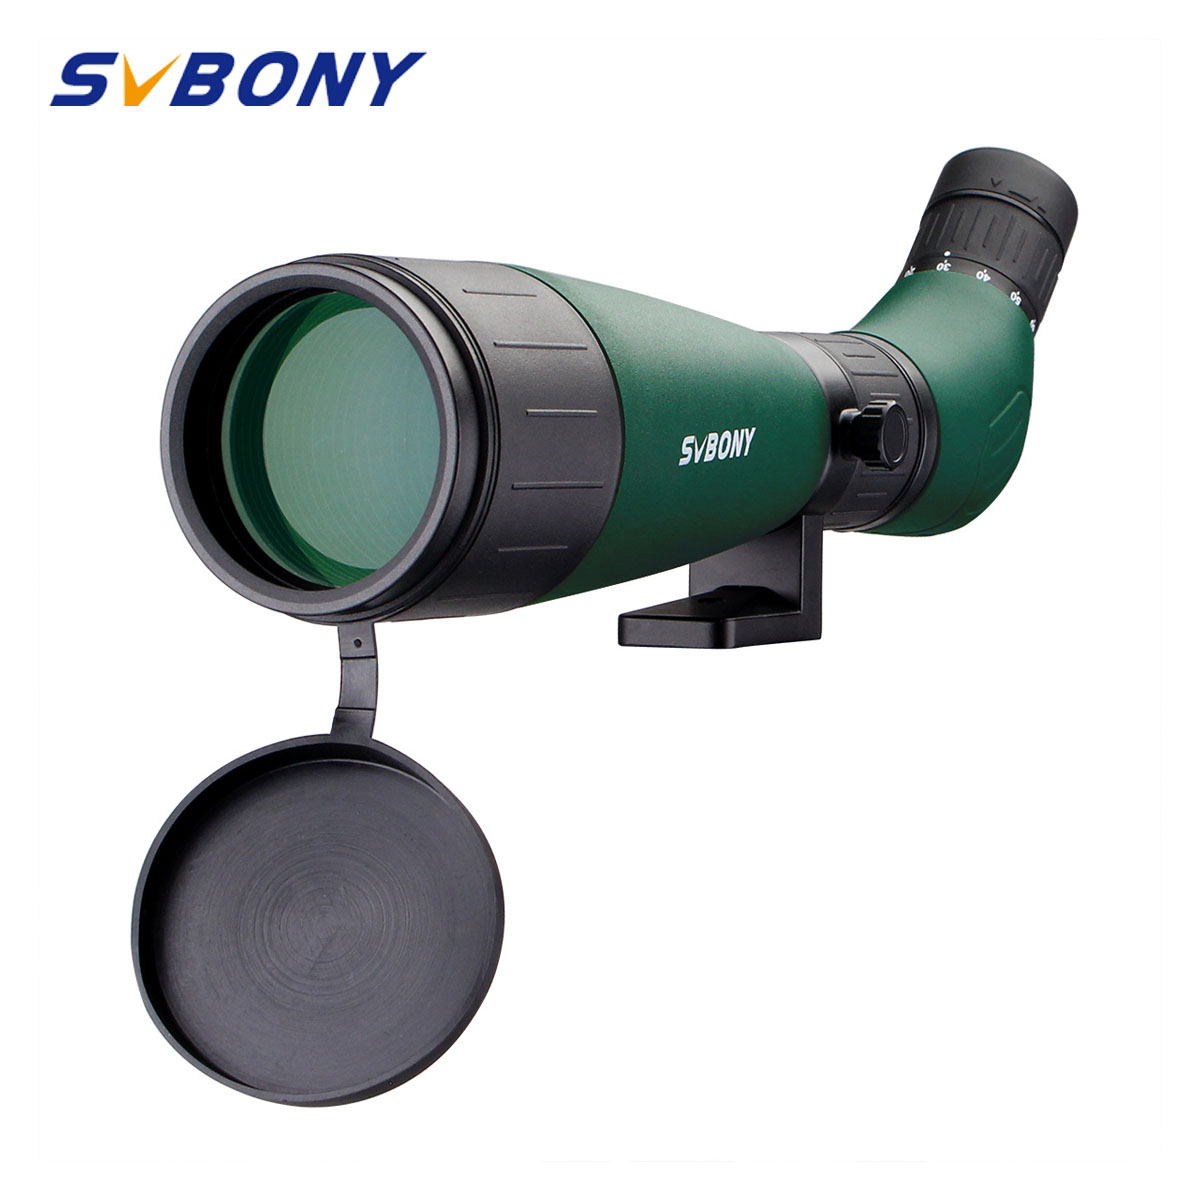 SVBONY SV18 Spotting Scope 20 60x60 Telescope Birdwatching Archery Fully Coated Compact with Phone Adapter F9327